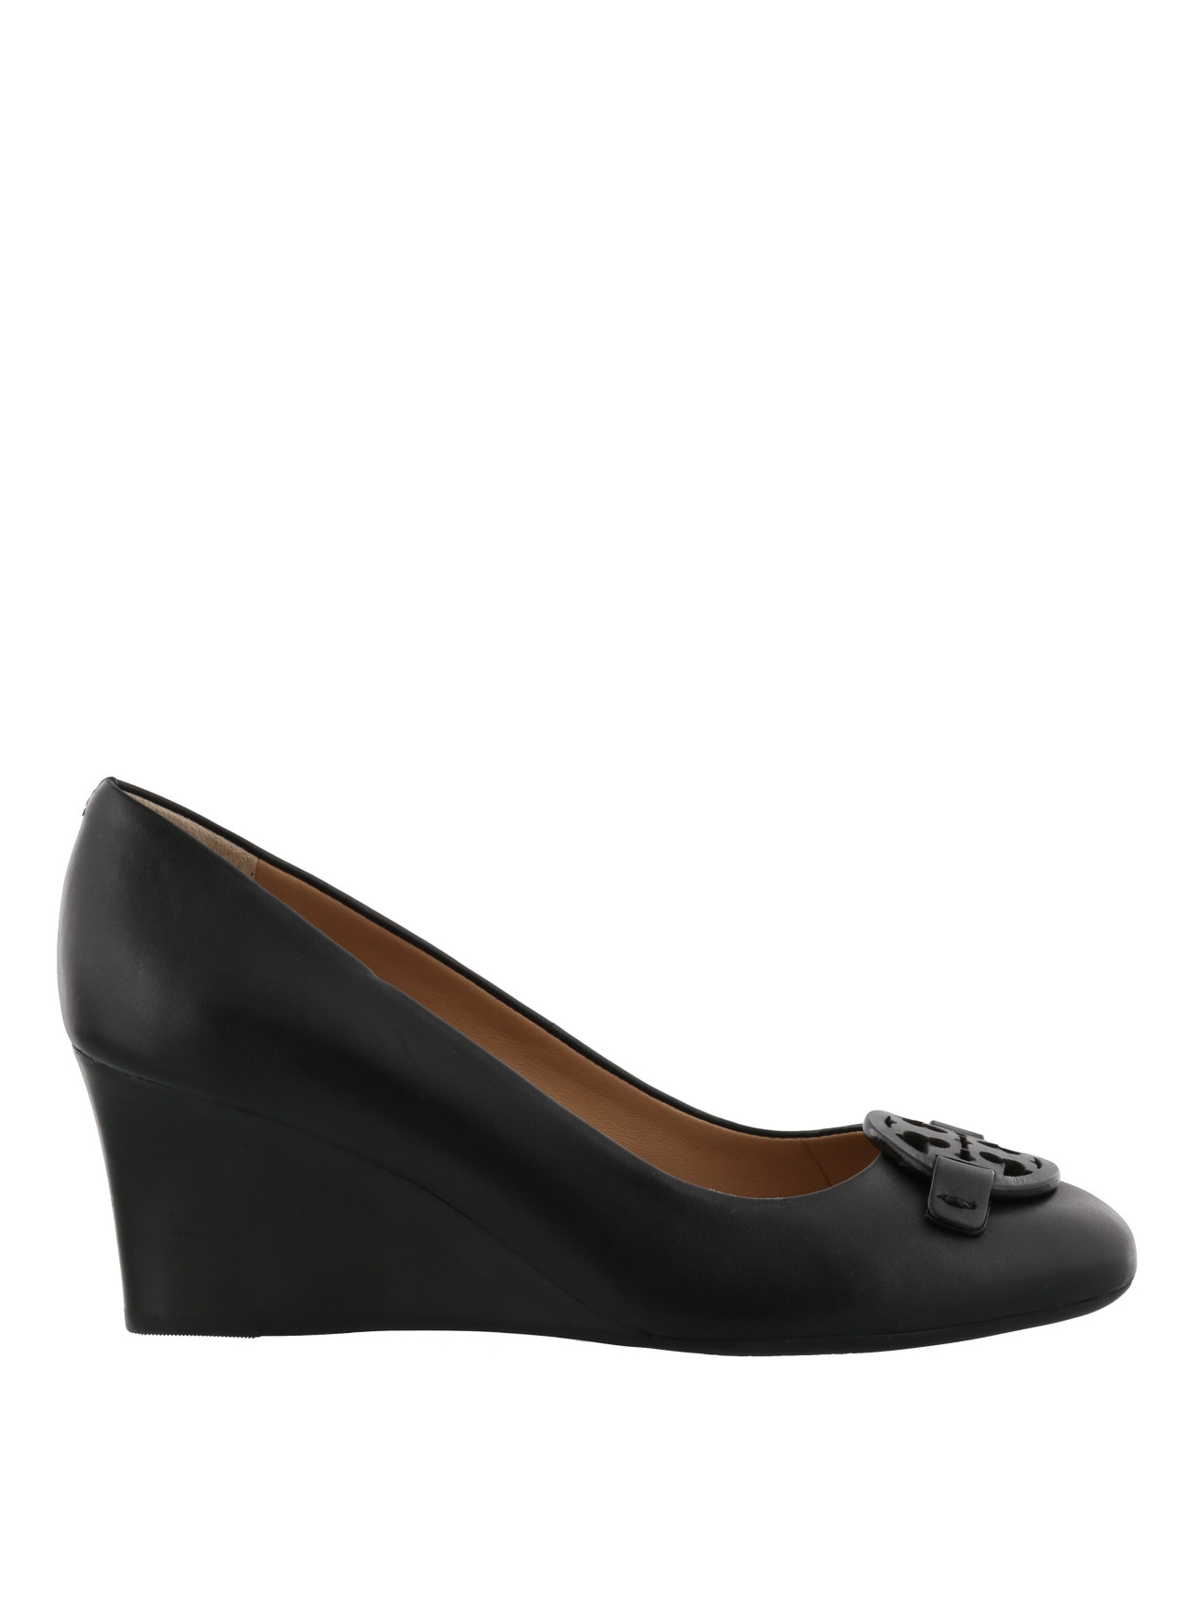 53dbae6979d8b Tory Burch - Miller black leather wedge pumps - court shoes - 40296 001